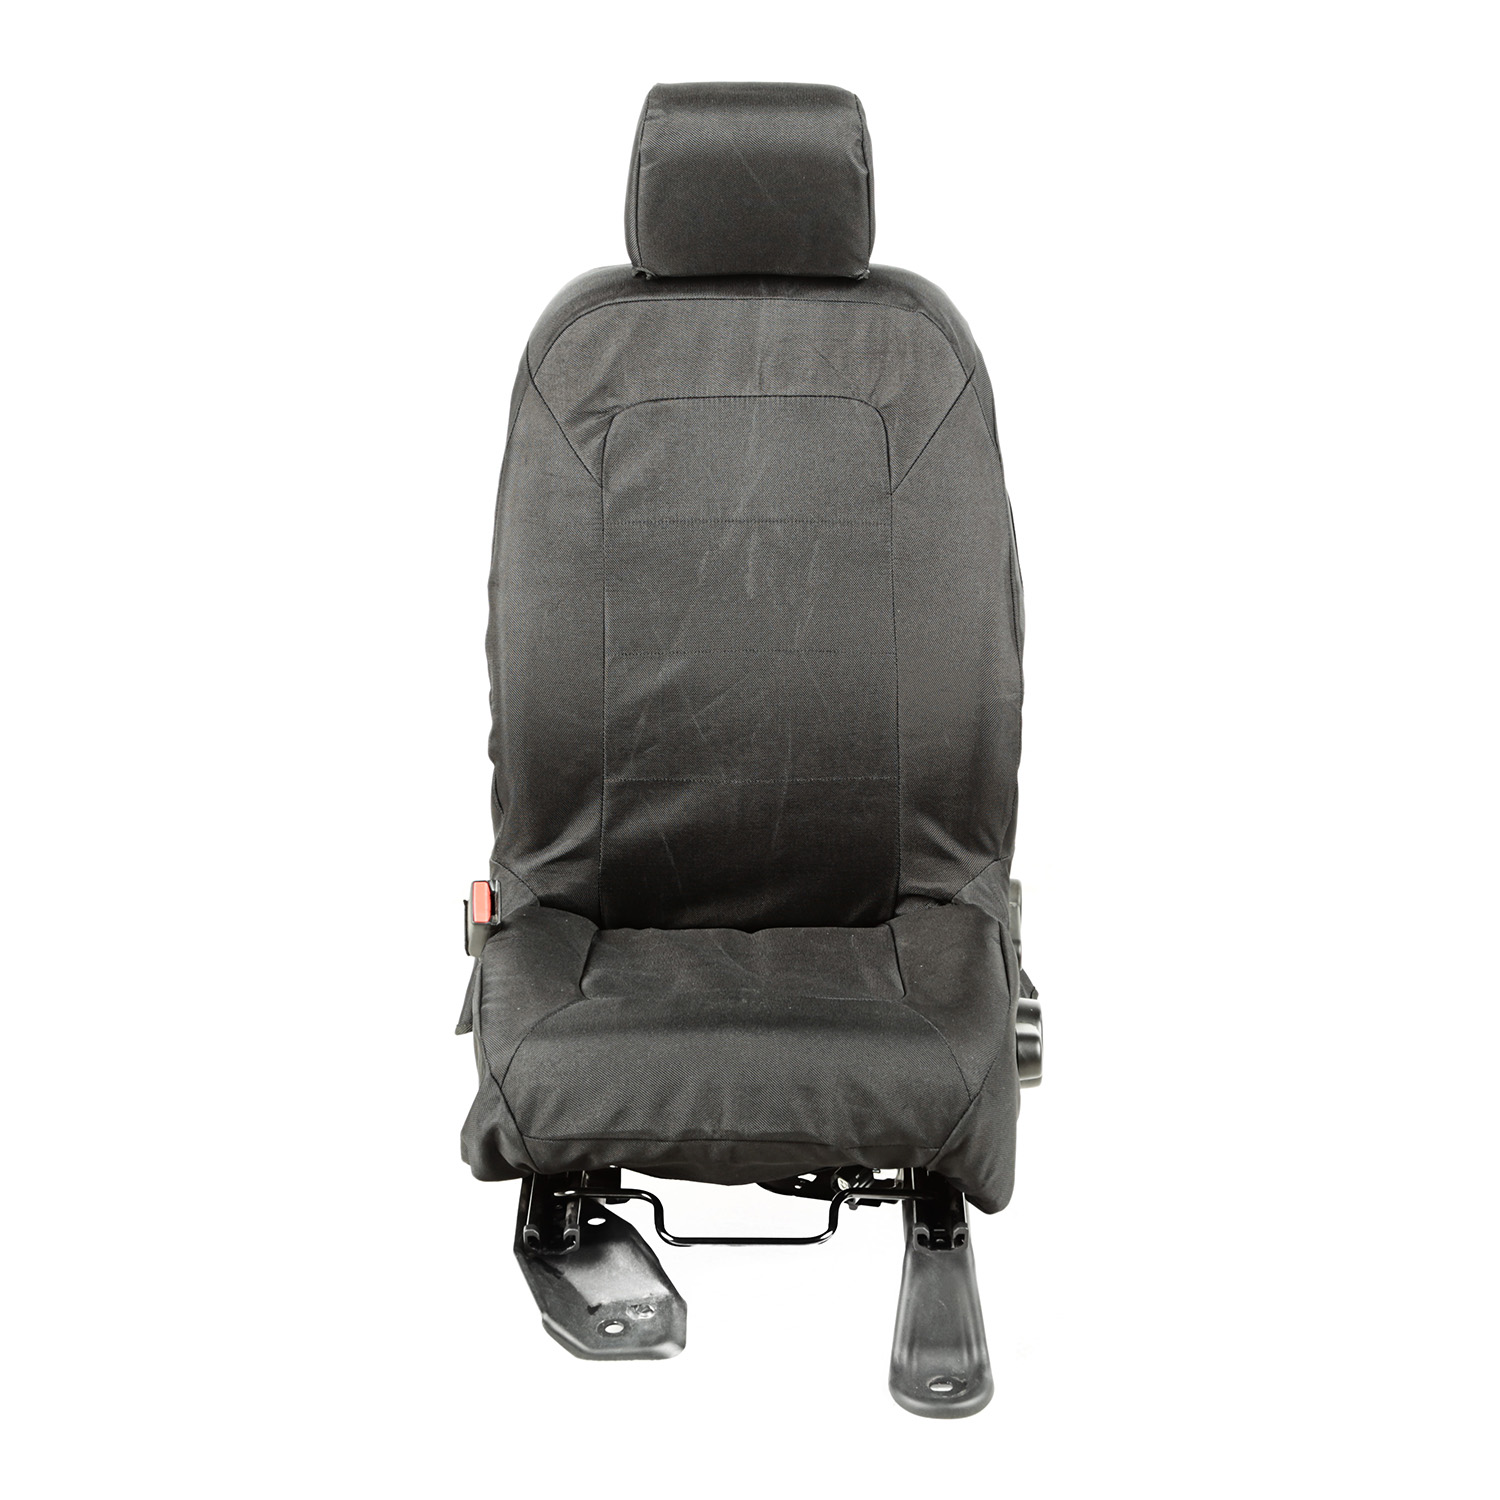 Rugged Ridge E-Ballistic Front Seat Cover Set, Black - JK 2011-16